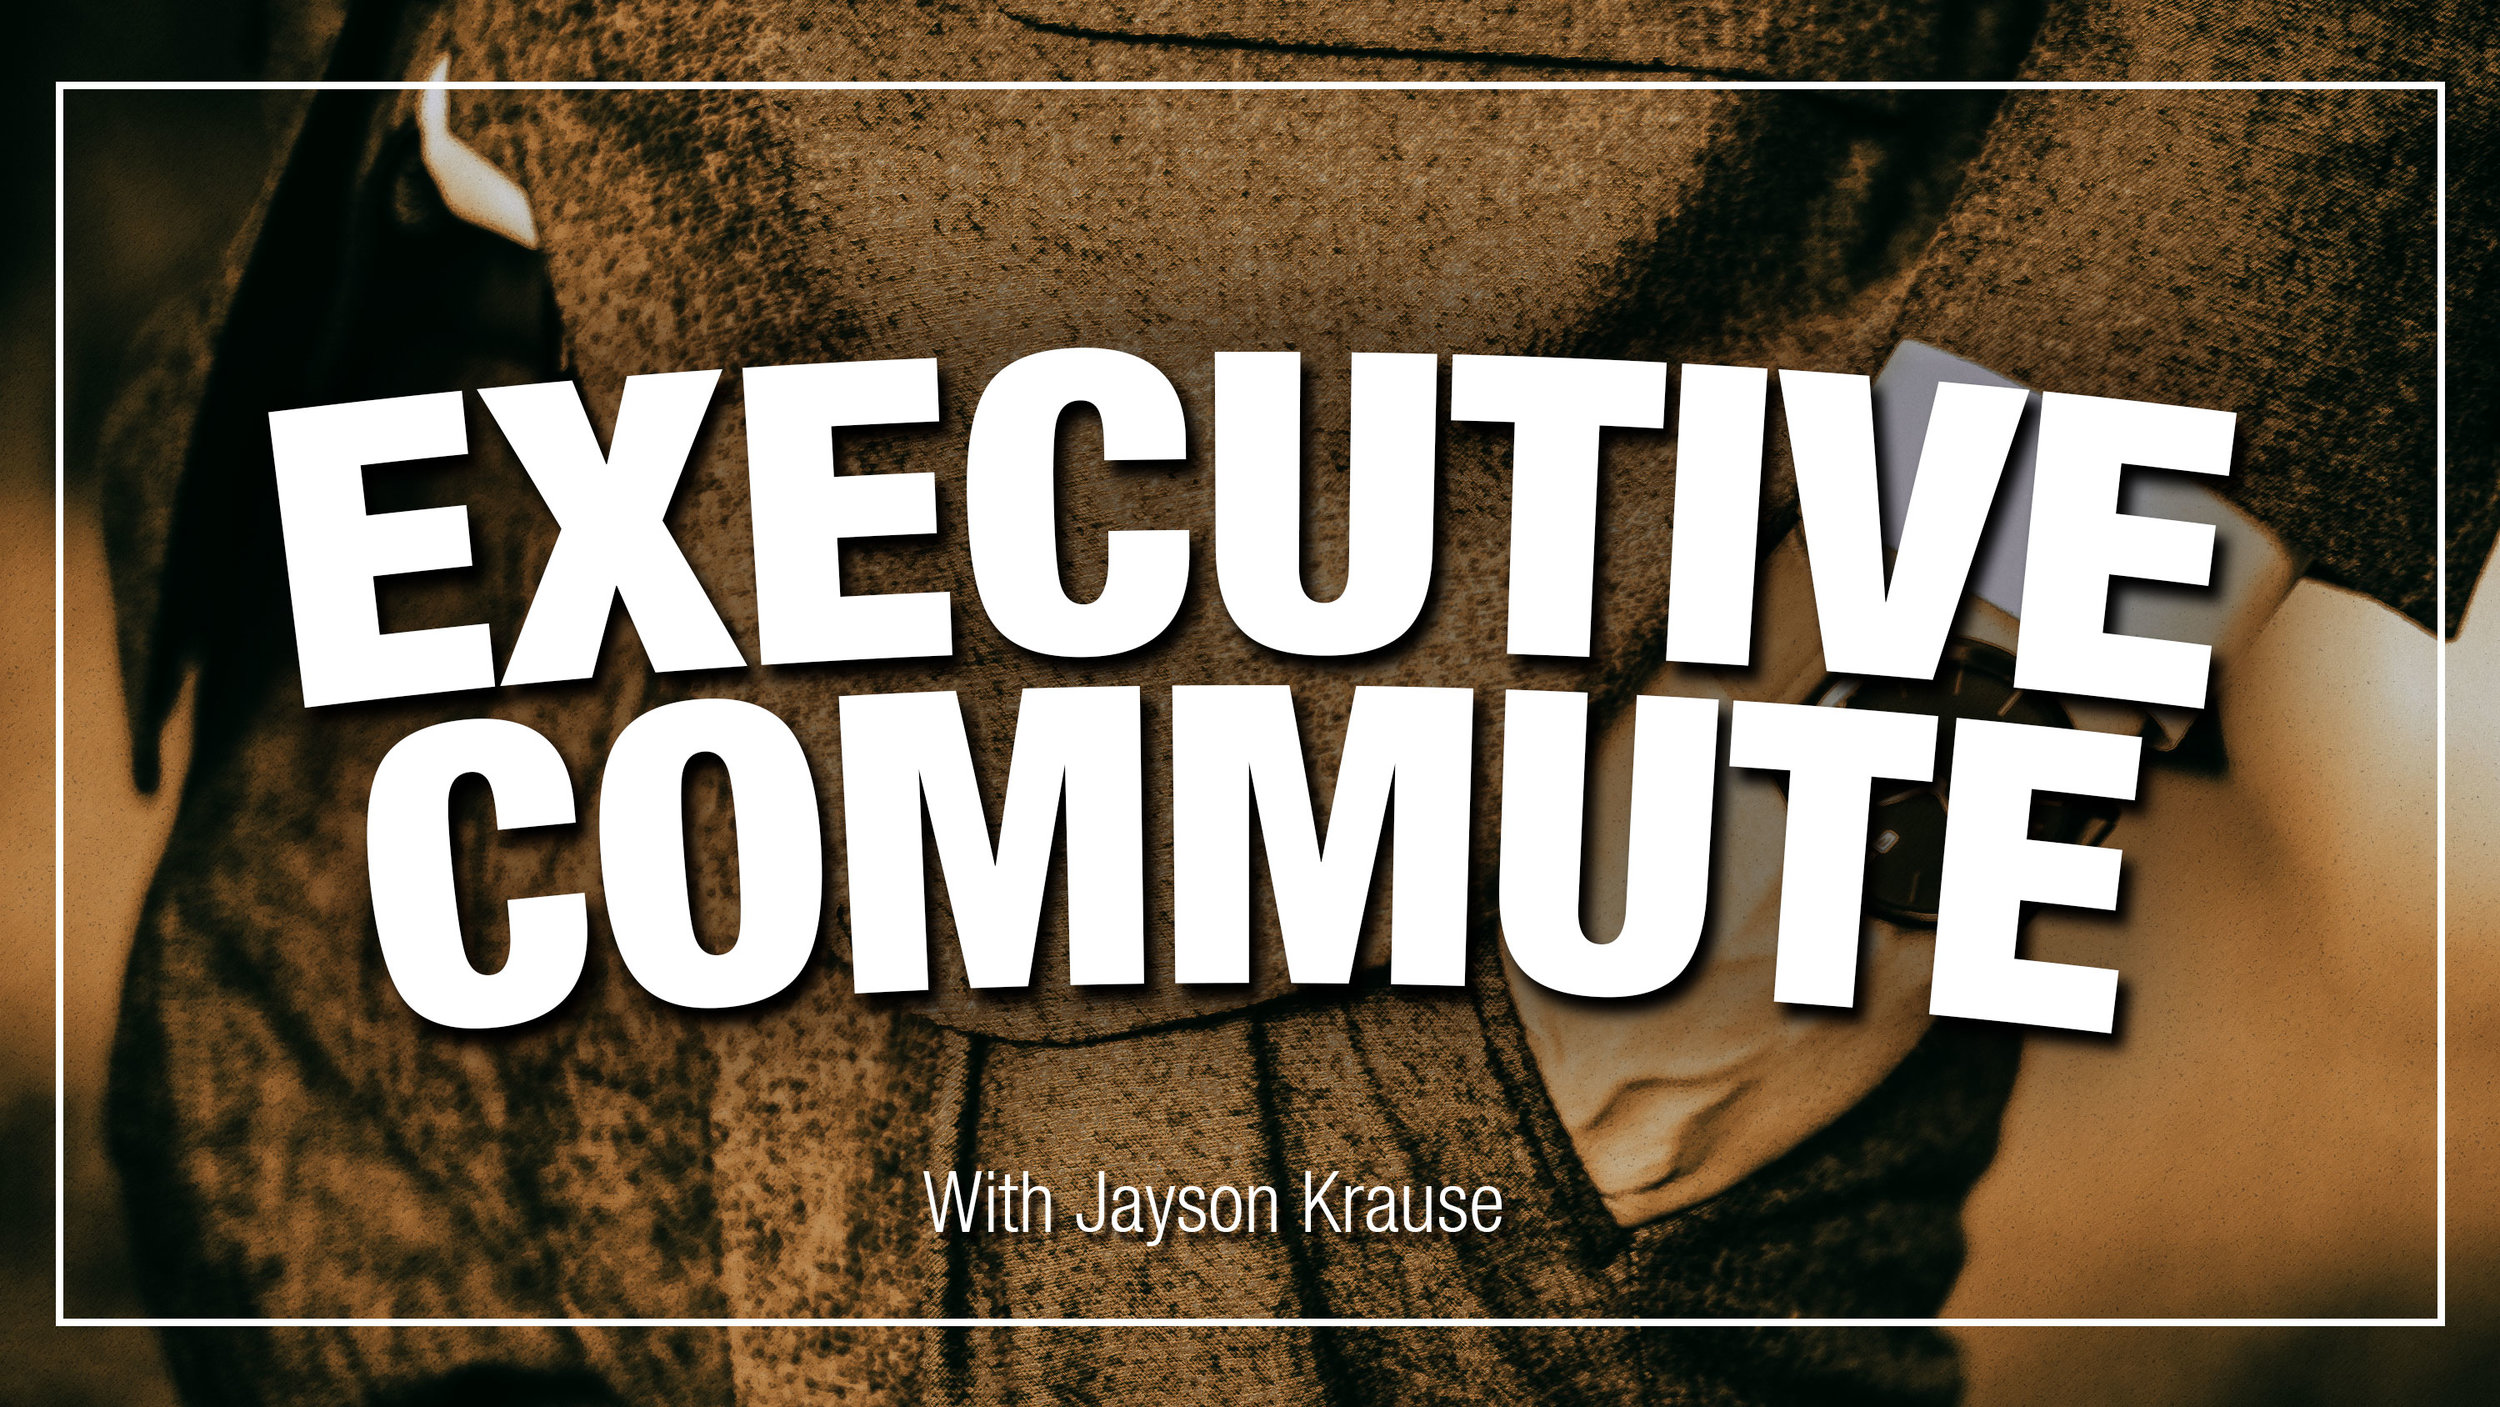 Executive-Commute-Cover-16x9.jpg